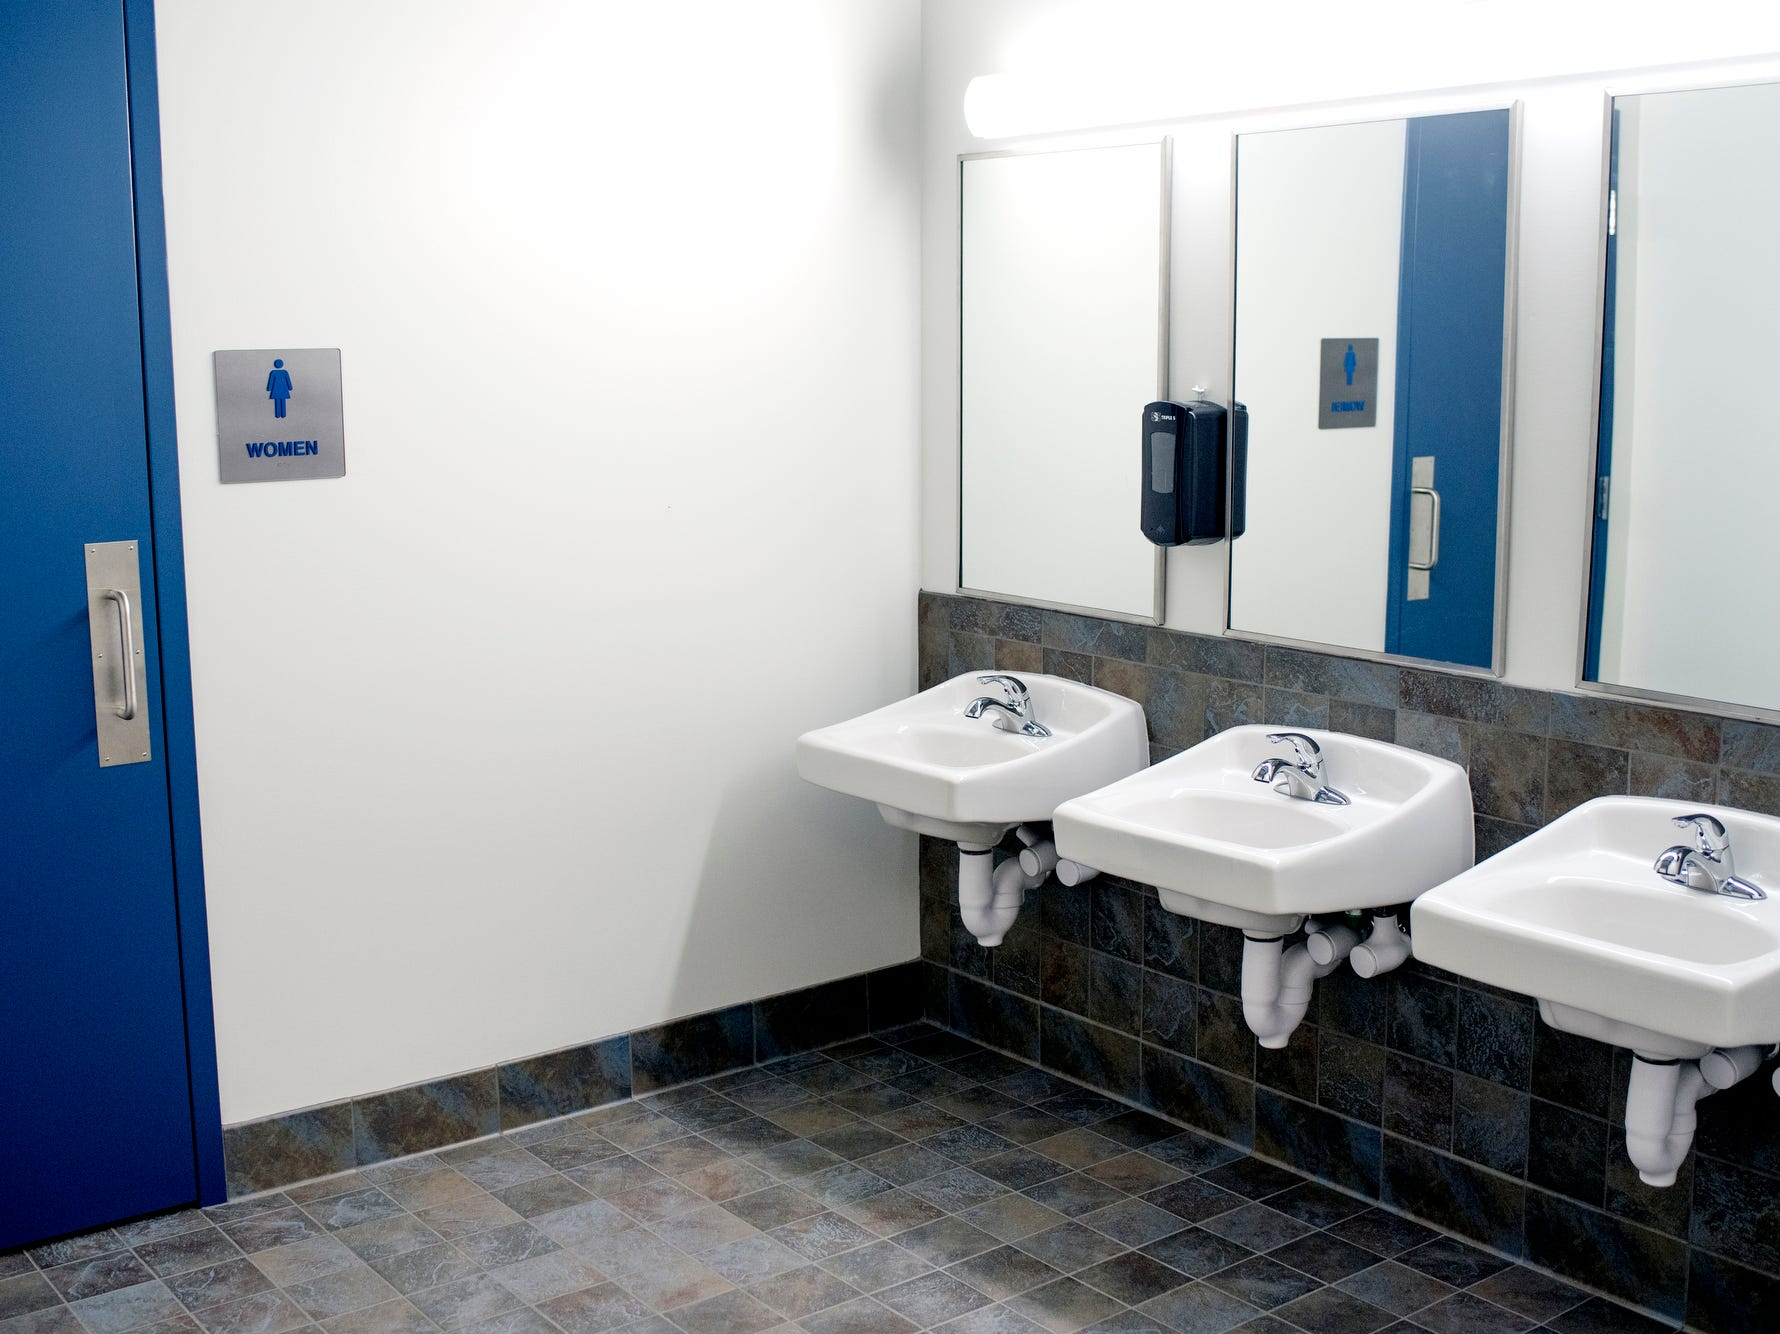 The washing area of the bathrooms is in an open space at Cole Academy's East Lansing campus. The school, Cole Academy's second campus, is opening this fall.